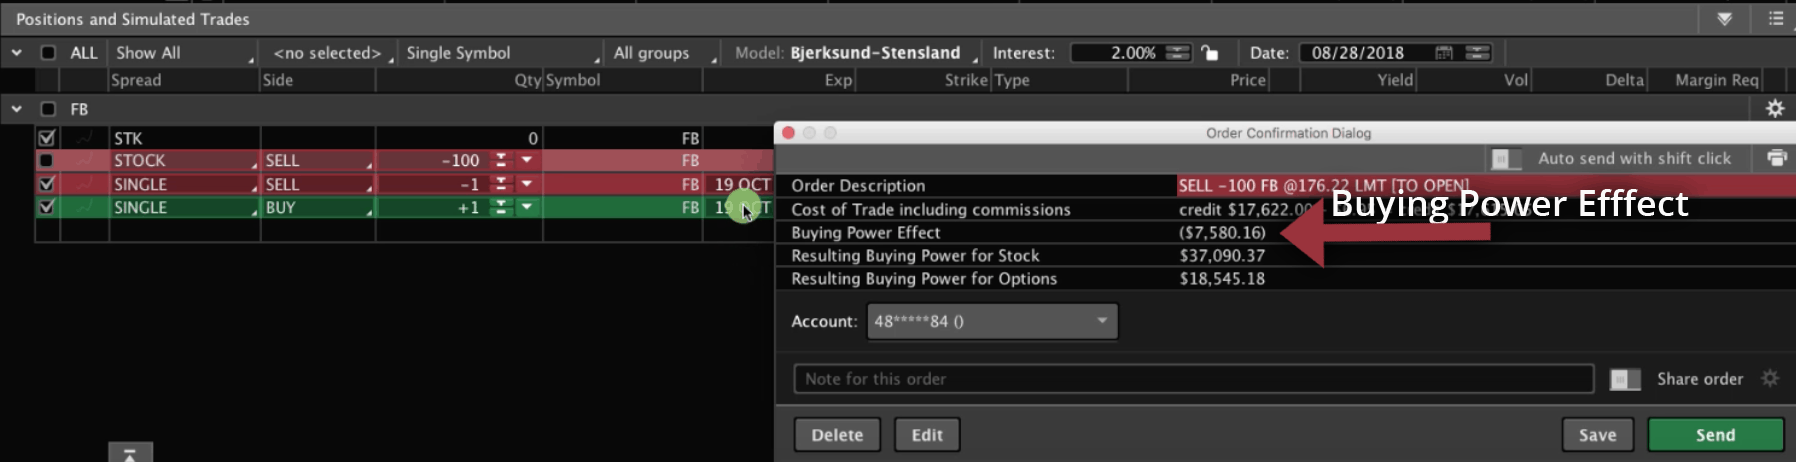 Buying Power Effect graphic